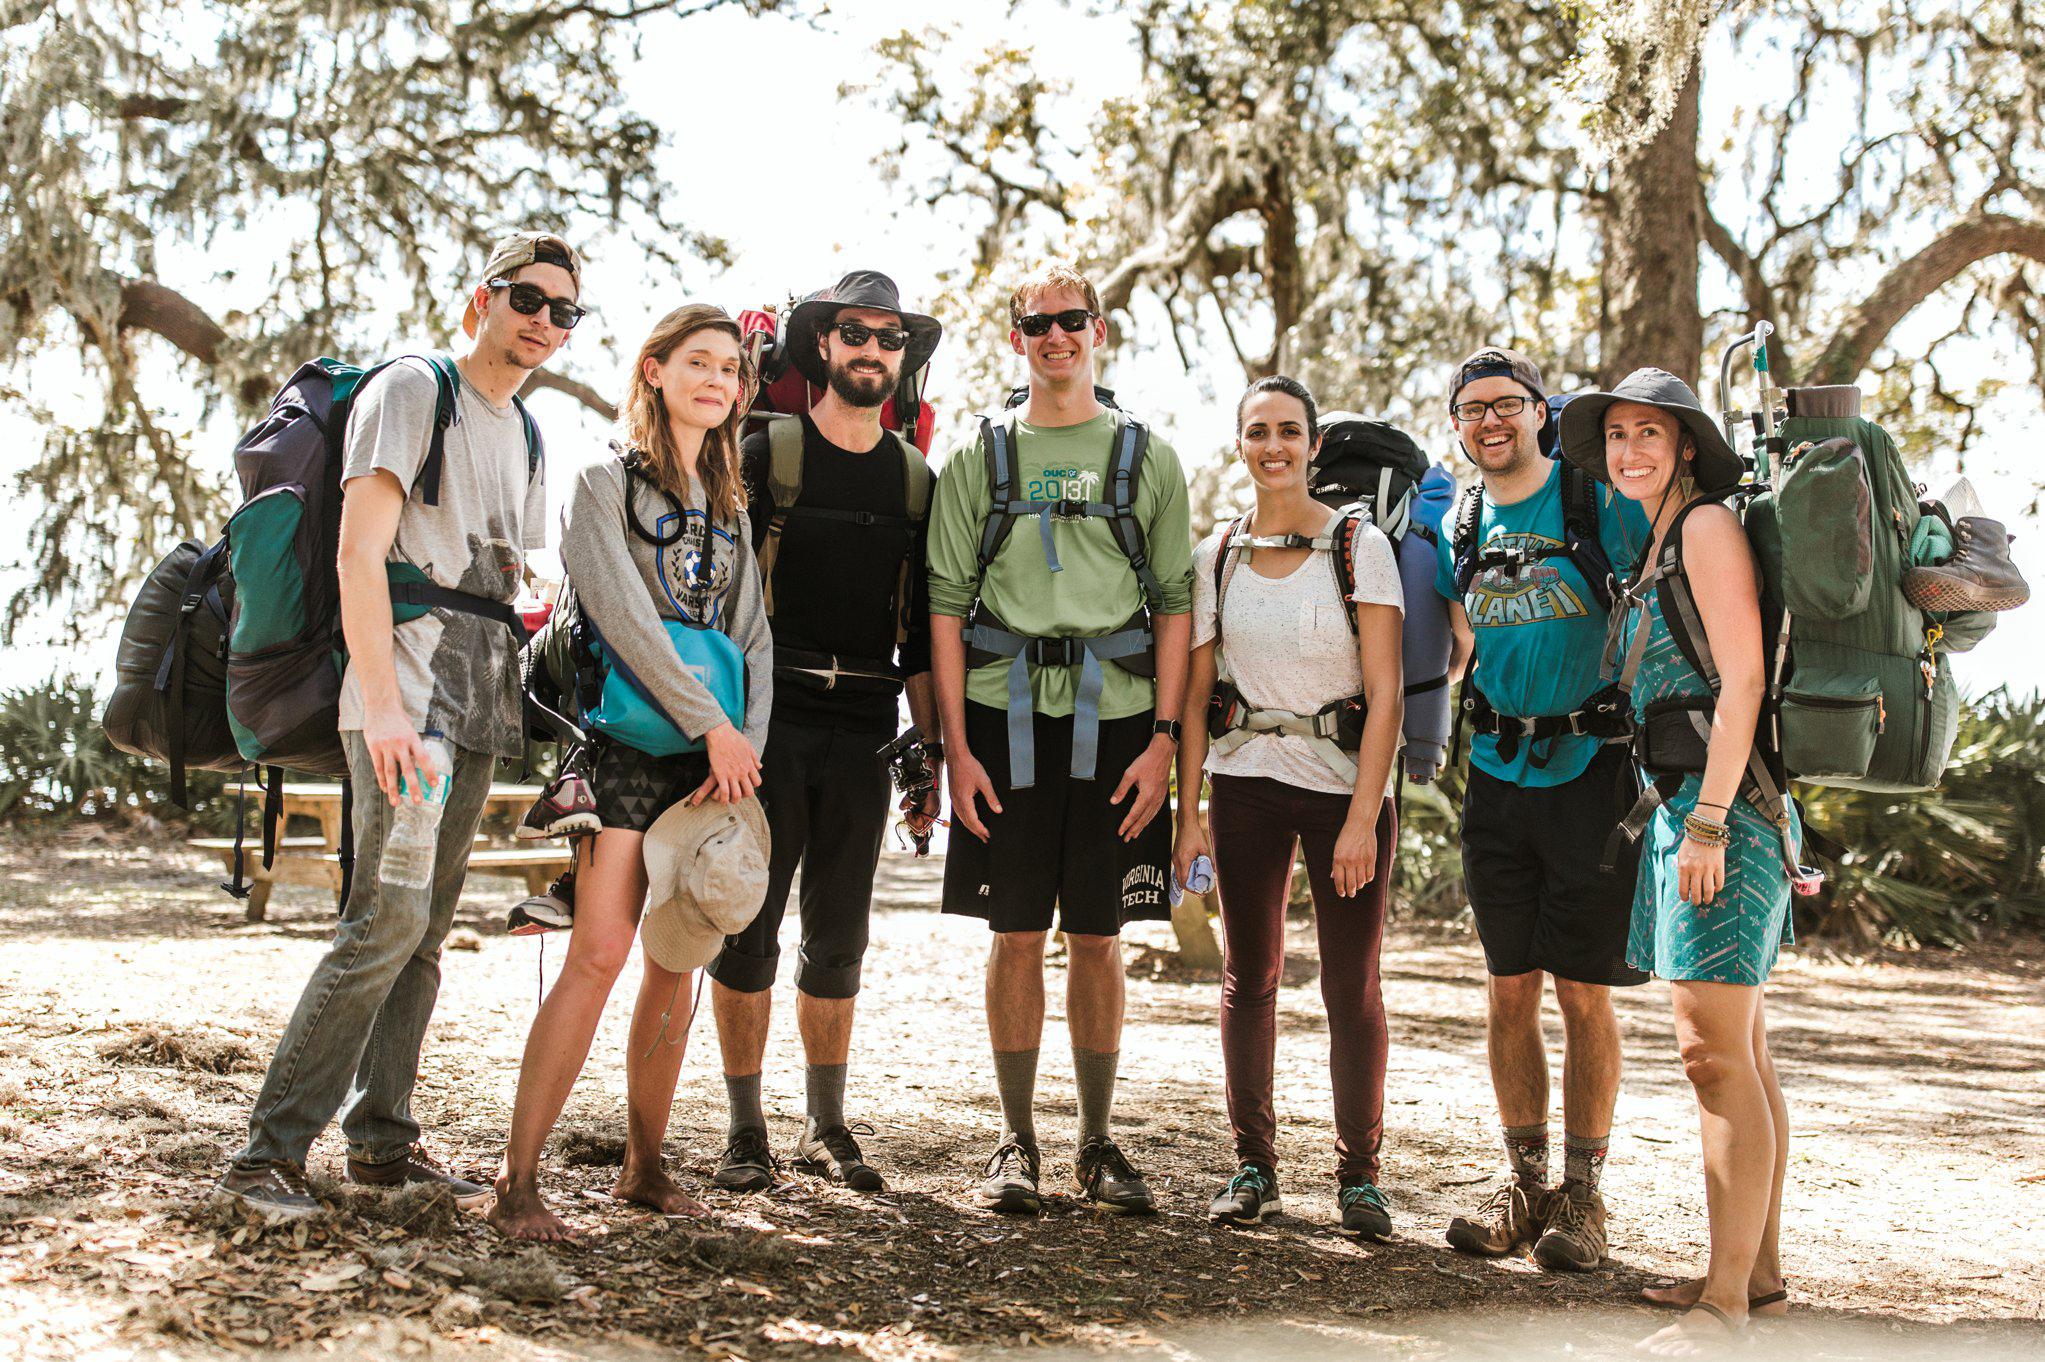 outdoor backpacking adventure photography- Cumberland Island National Seashore 2017 048.jpg